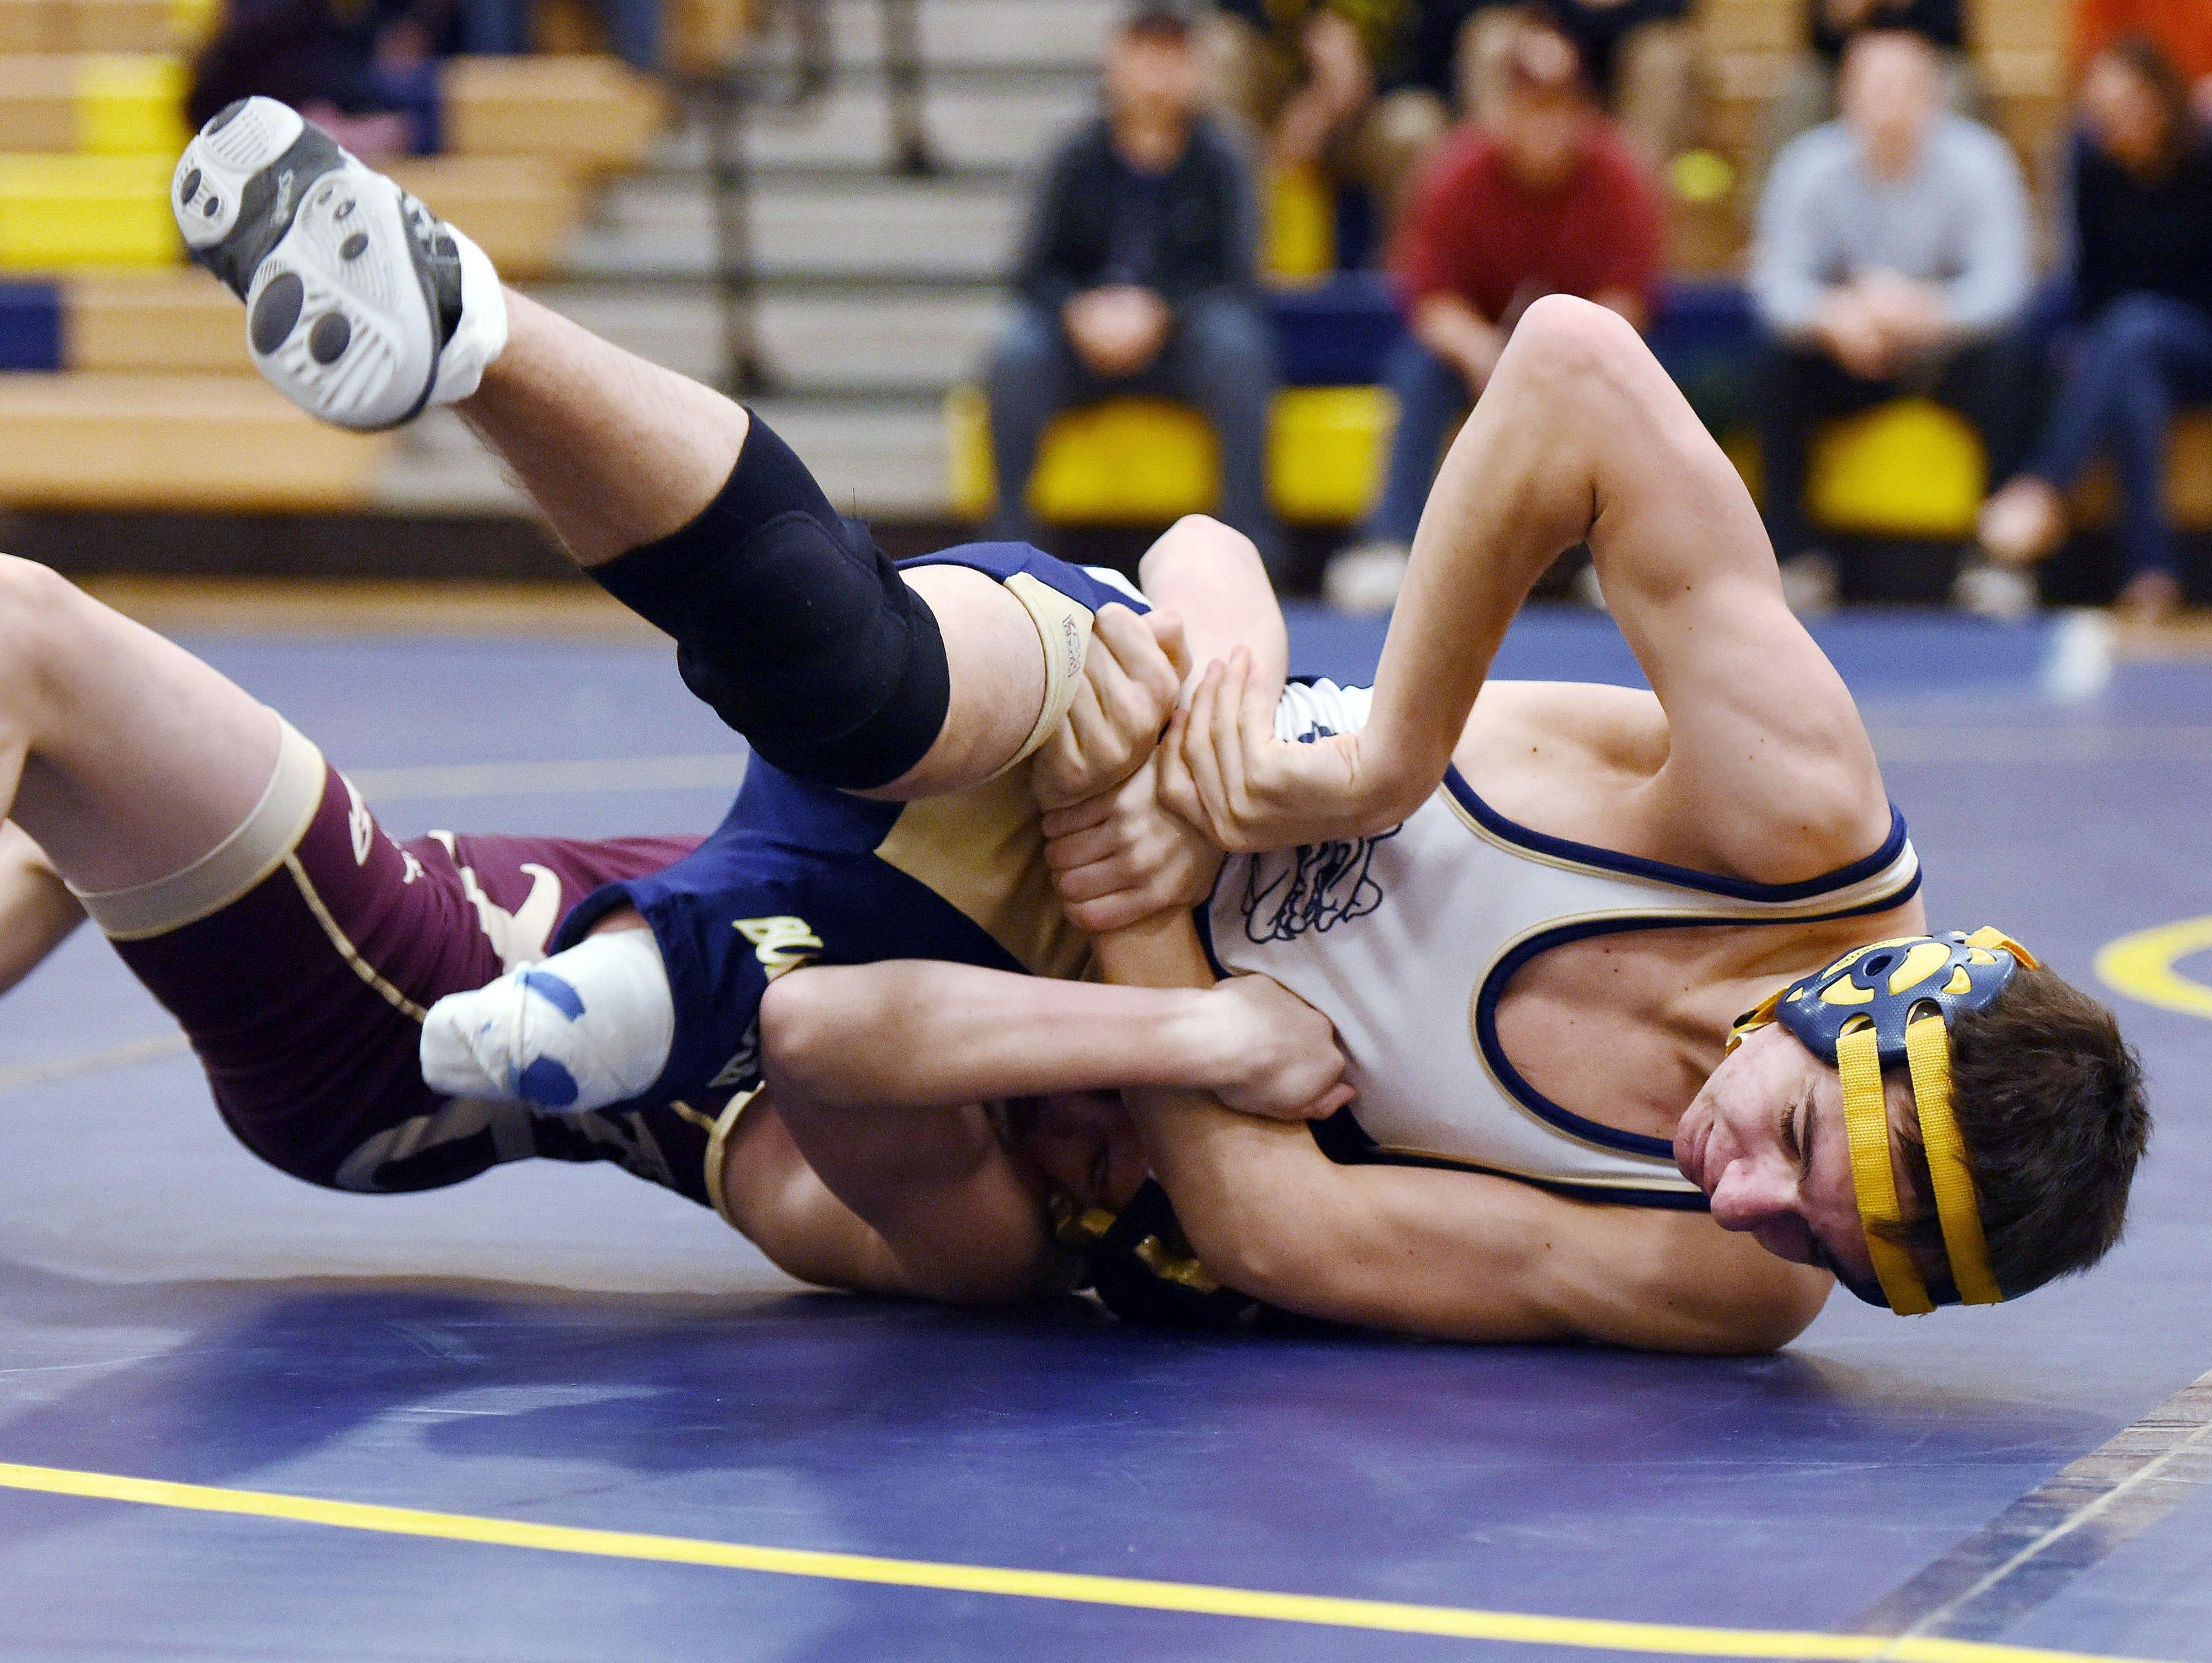 Beacon High School's Liam Ollive, top, wrestles at 99 pounds against Arlington High School's Dennis Robin in December in Beacon.